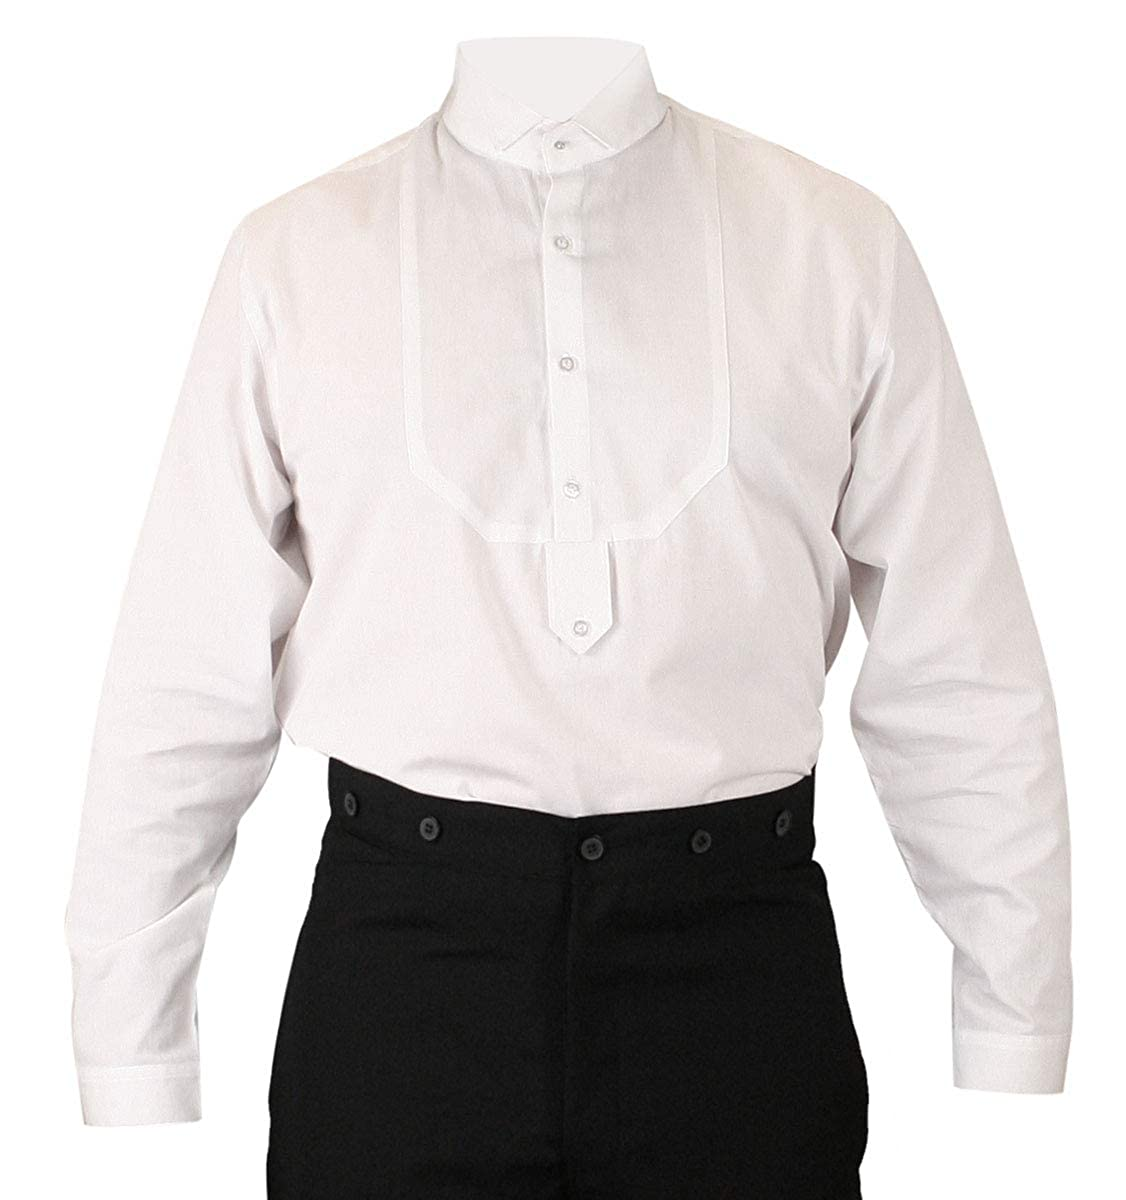 Victorian Men's Shirts- Wingtip, Gambler, Bib, Collarless Wing Tip Collar Stud/Cufflink Convertible Dress Shirt Historical Emporium Mens Victorian $59.95 AT vintagedancer.com